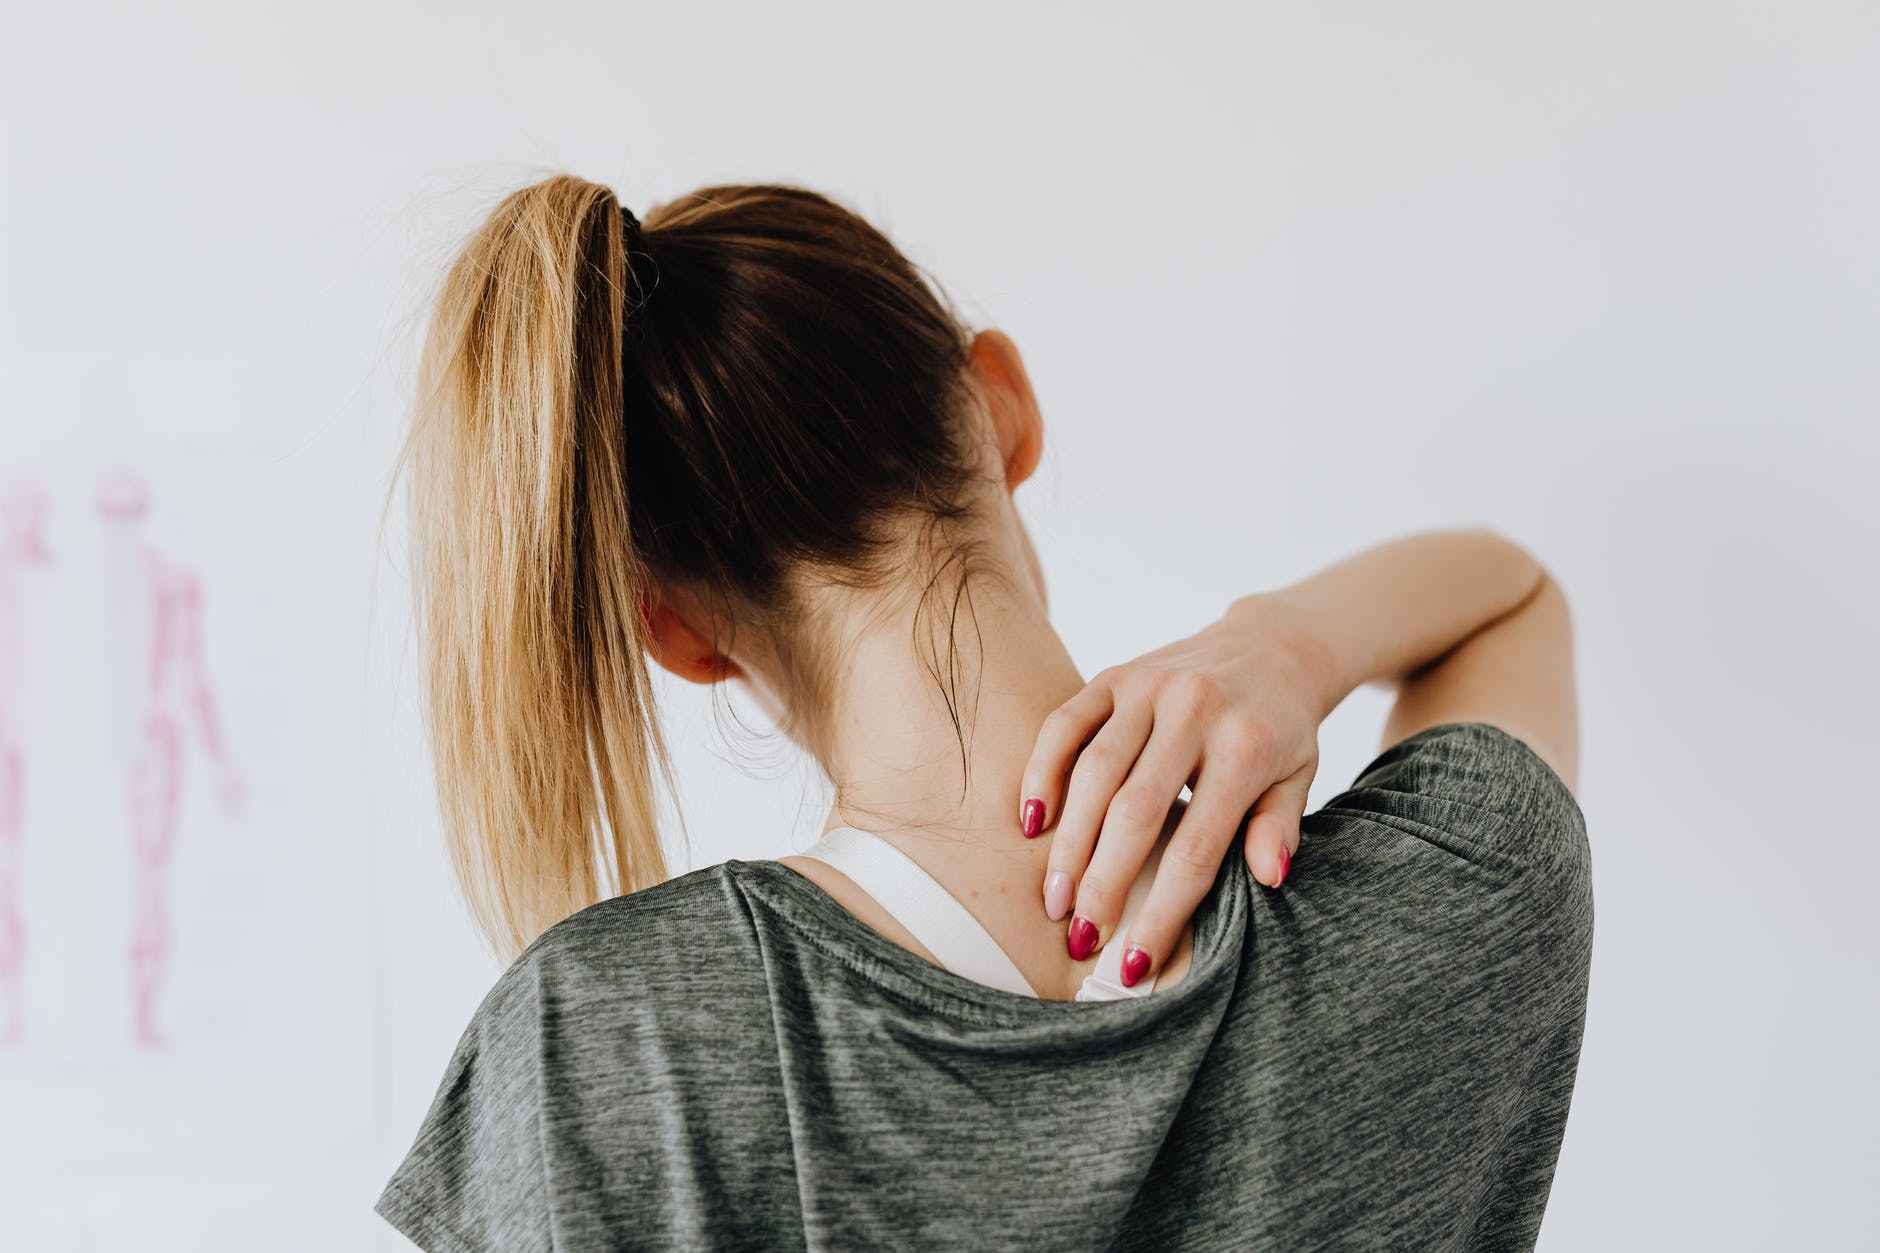 7 Different Chiropractic Adjustment Methods For Neck Pain